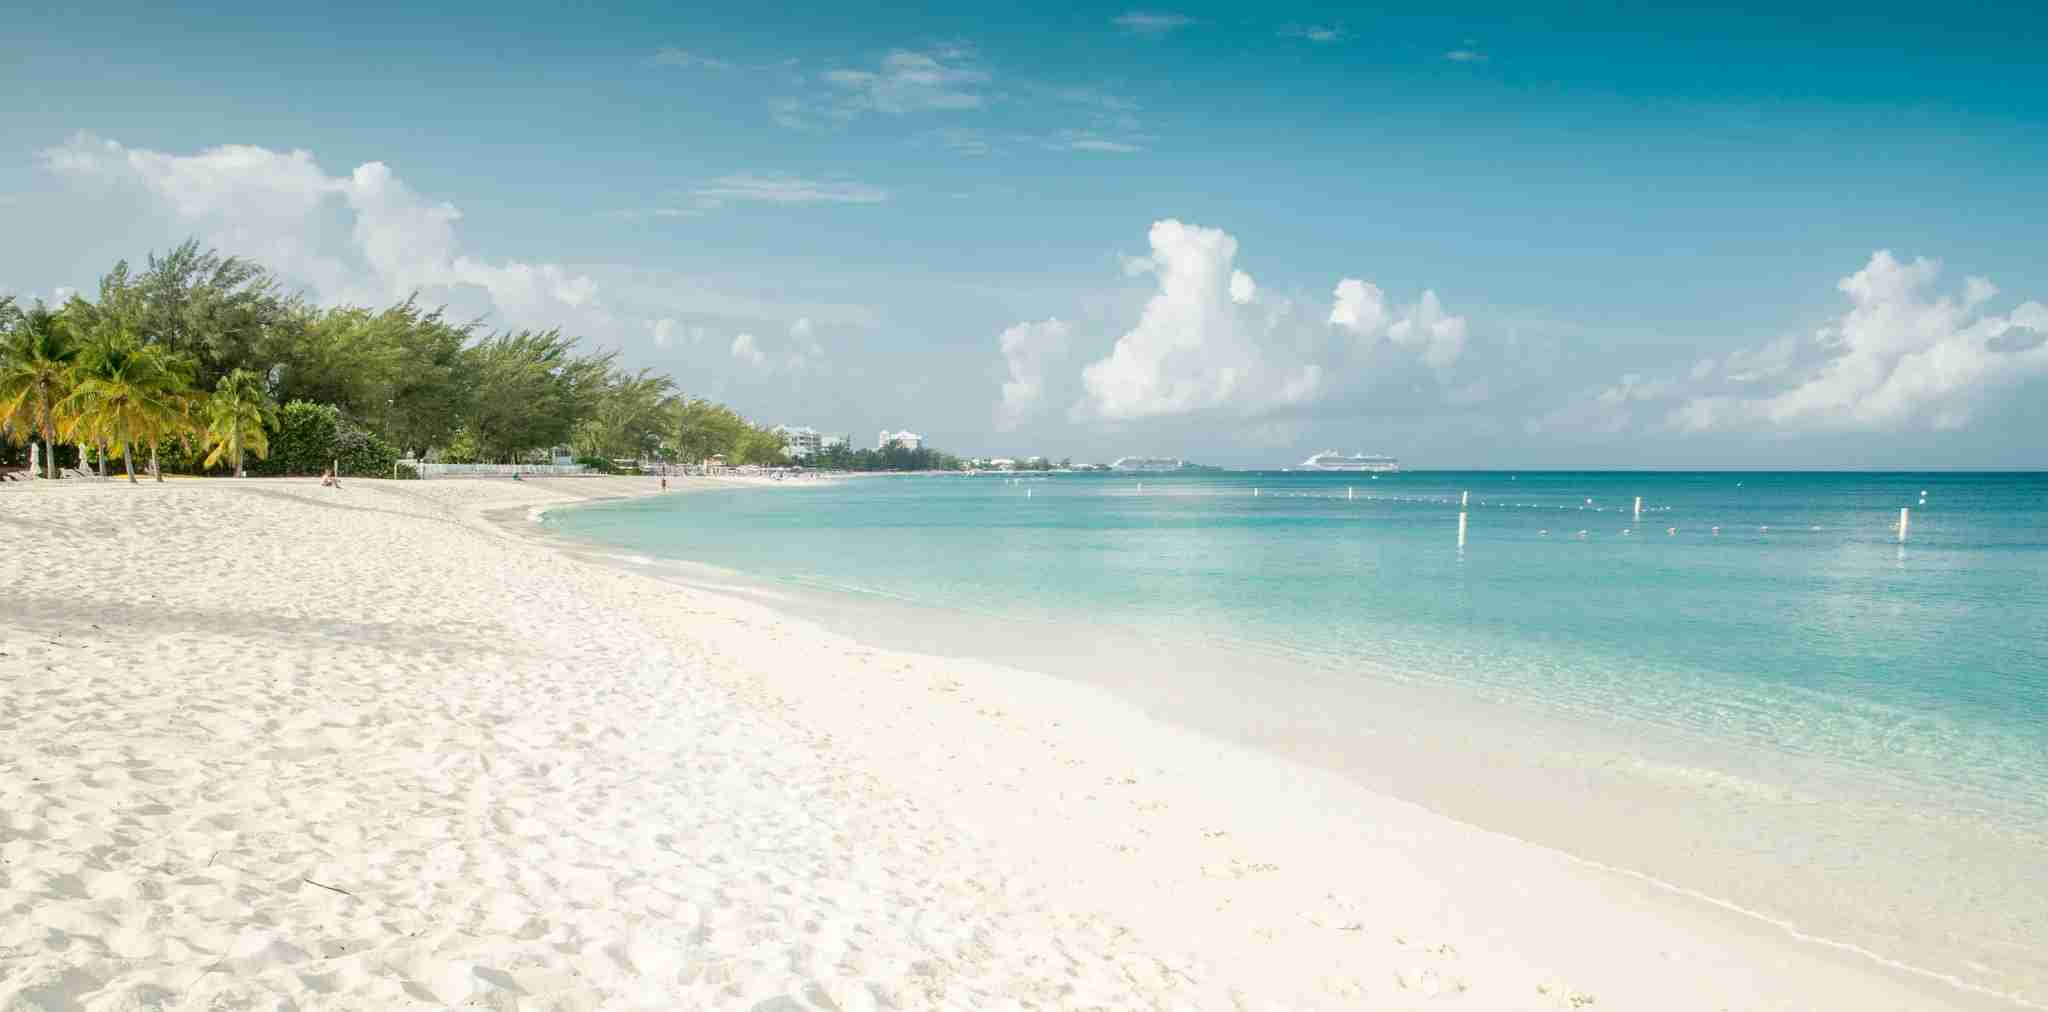 Panorama of Seven Mile Beach on Grand Cayman island (Getty Images)